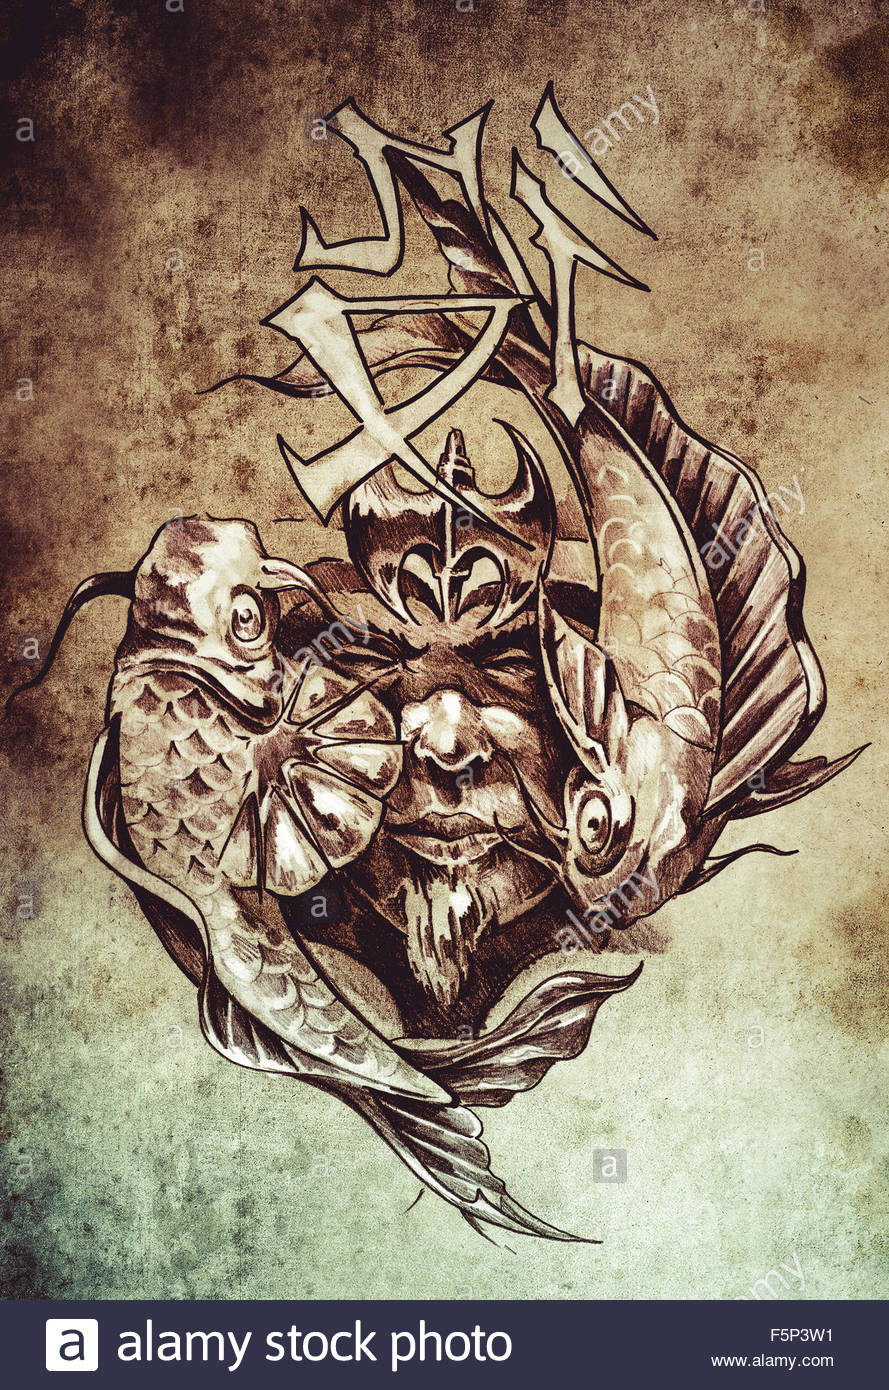 889x1390 Tattoo Art, Sketch Of A Japanese Warrior In Vintage Style Stock